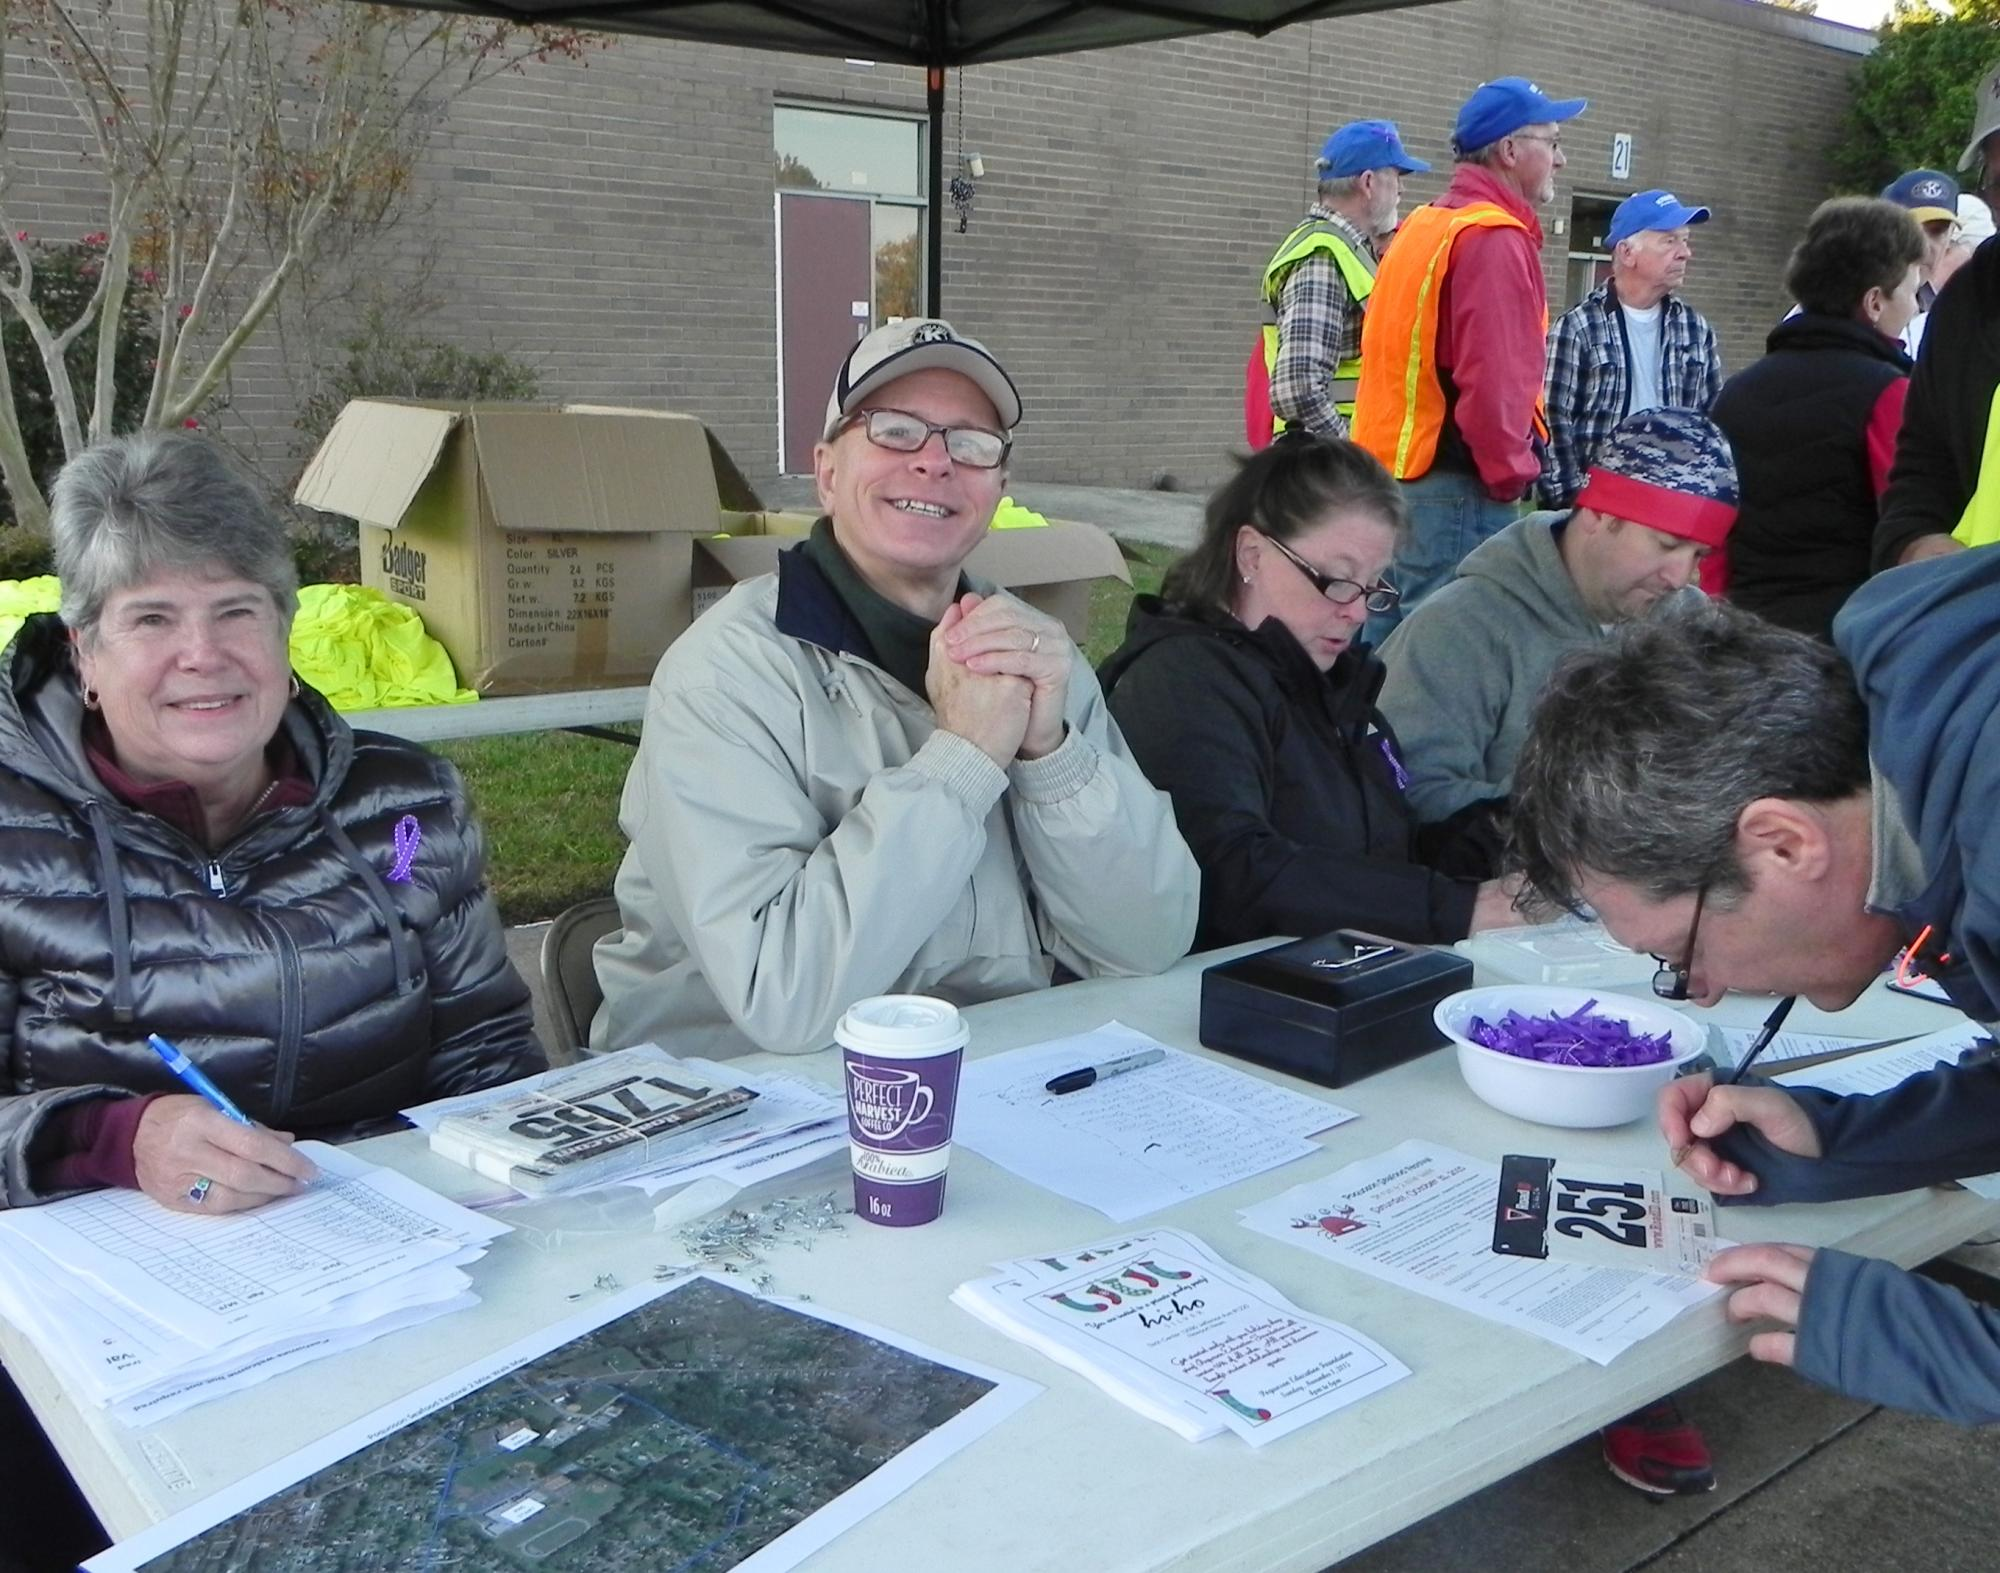 registration-table-with-napier-don-taylor-linda-riggs-phs-oct-31-2015.jpg